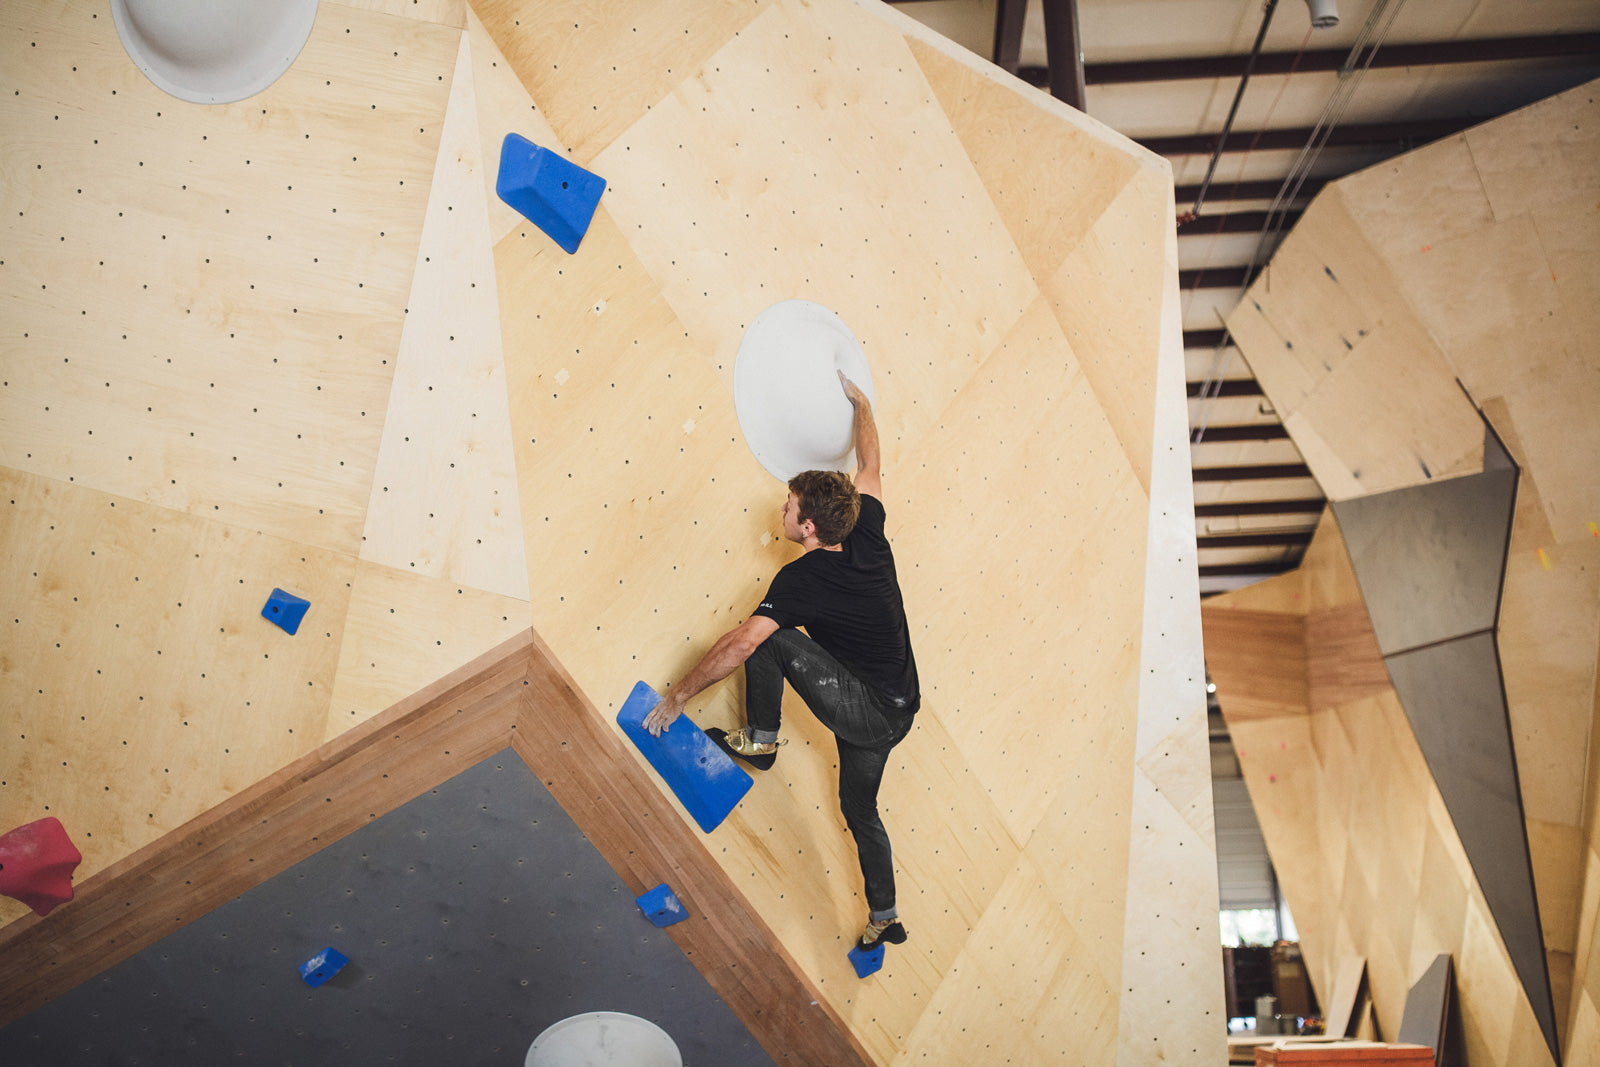 men's so ill climbing denim jeans bouldering at nashville gym